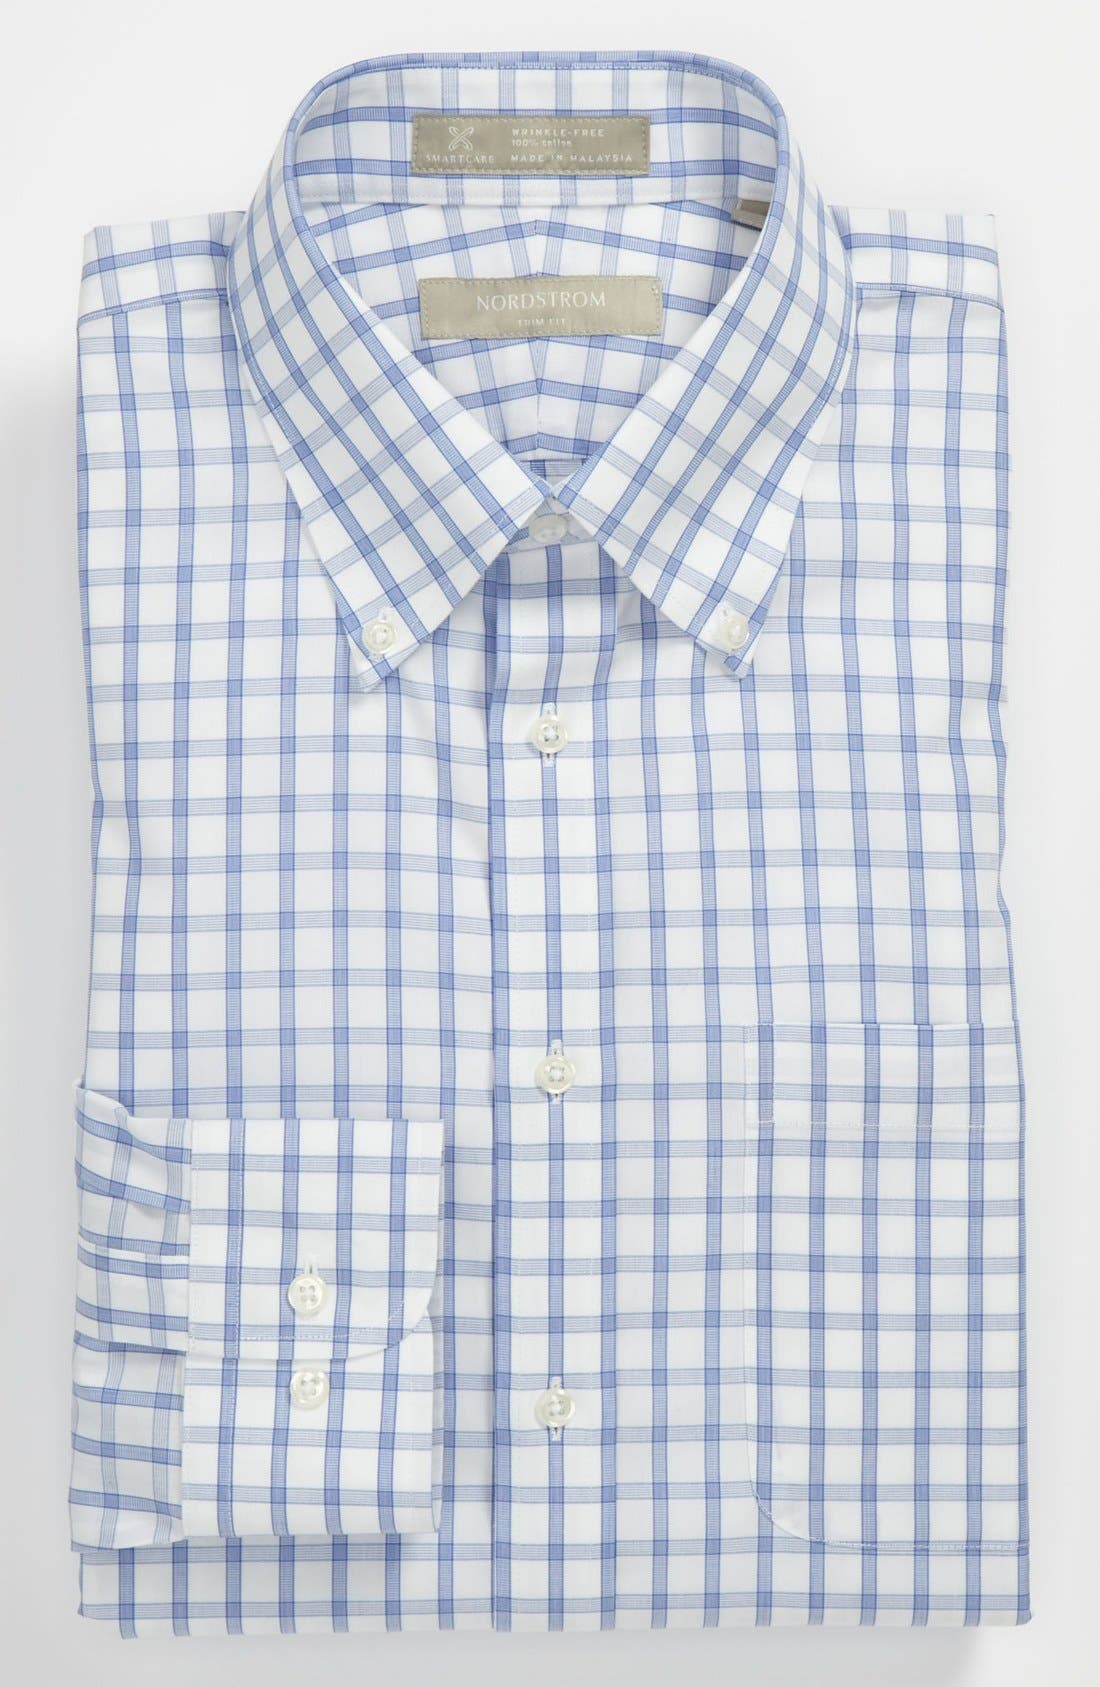 Main Image - Nordstrom Smartcare™ Wrinkle Free Trim Fit Check Dress Shirt